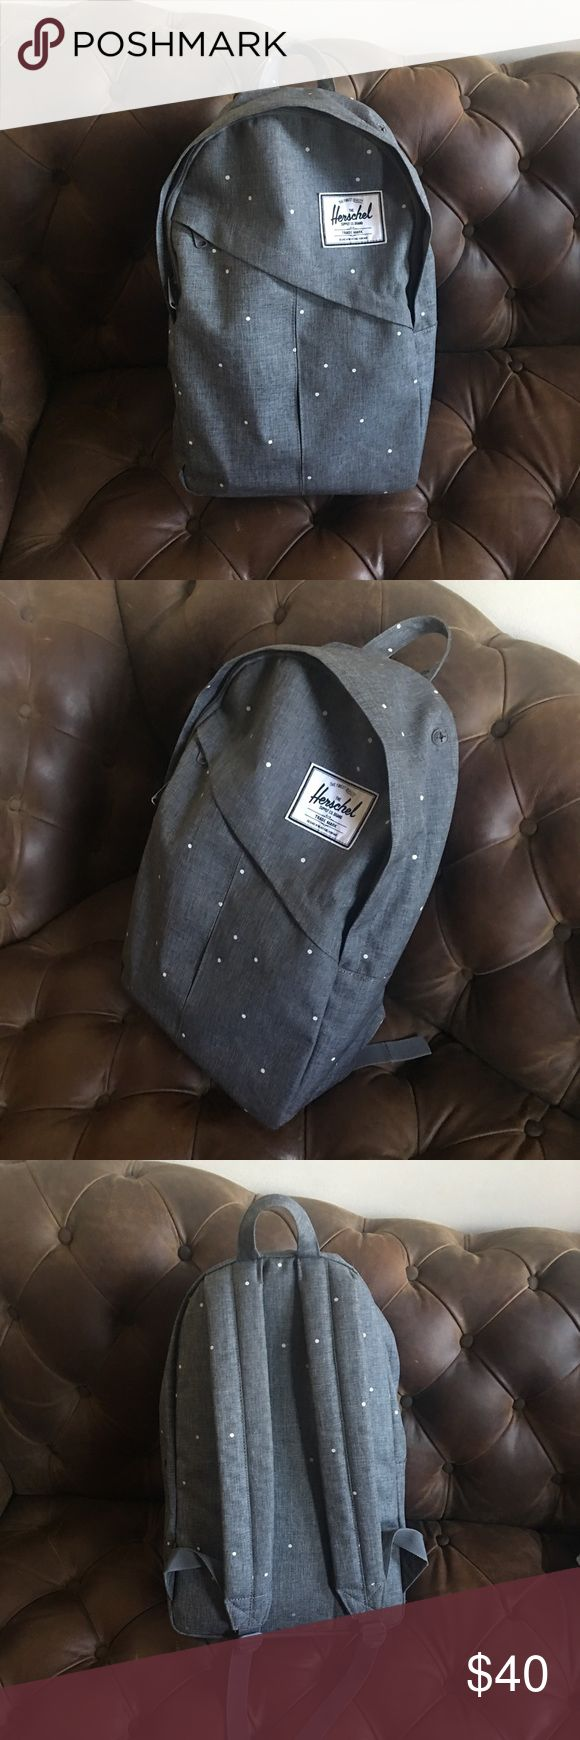 HERSCHEL HEATHERED DENIM POLKA DOT BACKPACK Gently used 3-4x. Excellent condition. Unique and cool heathered chambray/denim color with white polka dots. Unfortunately I have way too many backpacks and need to downsize. Perfect for school, hiking, and traveling. Has a large pocket where you can tuck a laptop in and a pen/pencil pocket on upper right side. This color is sold out everywhere! Best price on M. Herschel Supply Company Bags Backpacks